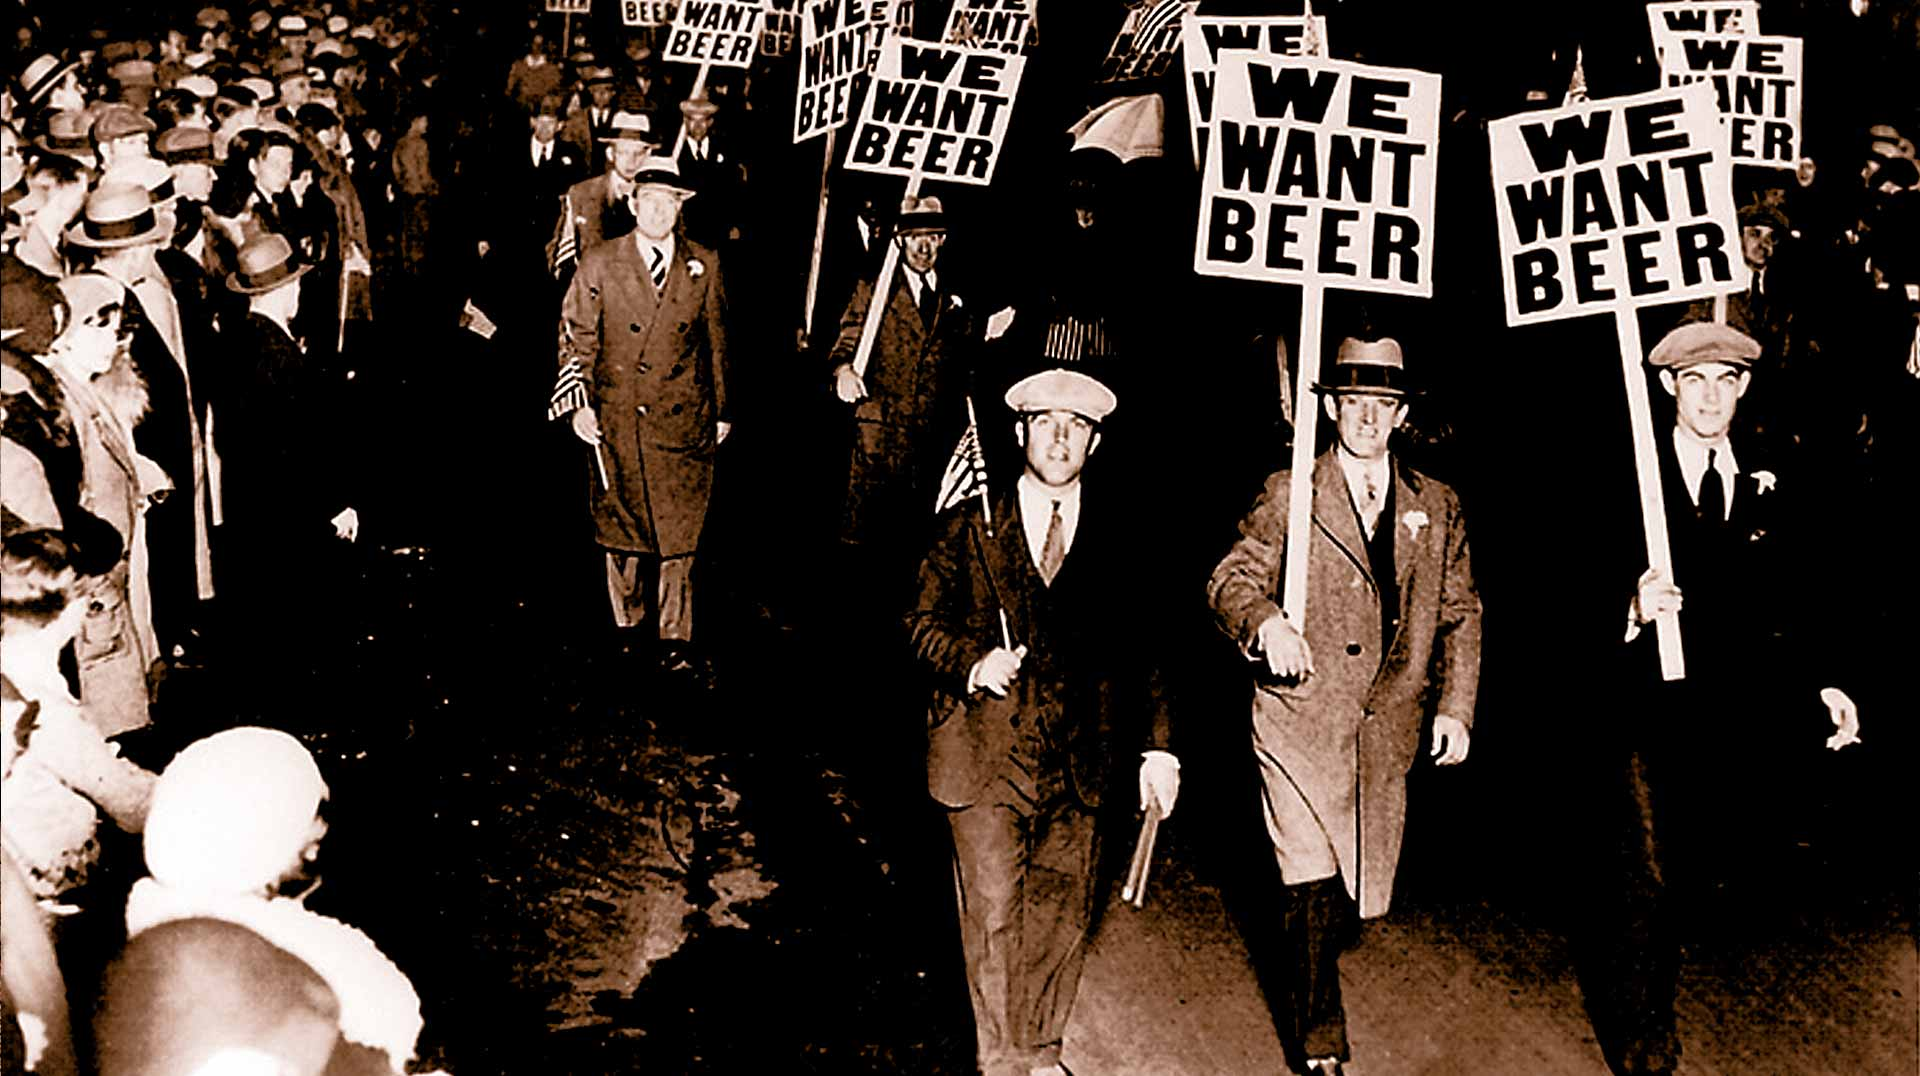 Protesting Prohibition with We Want Beer Signs